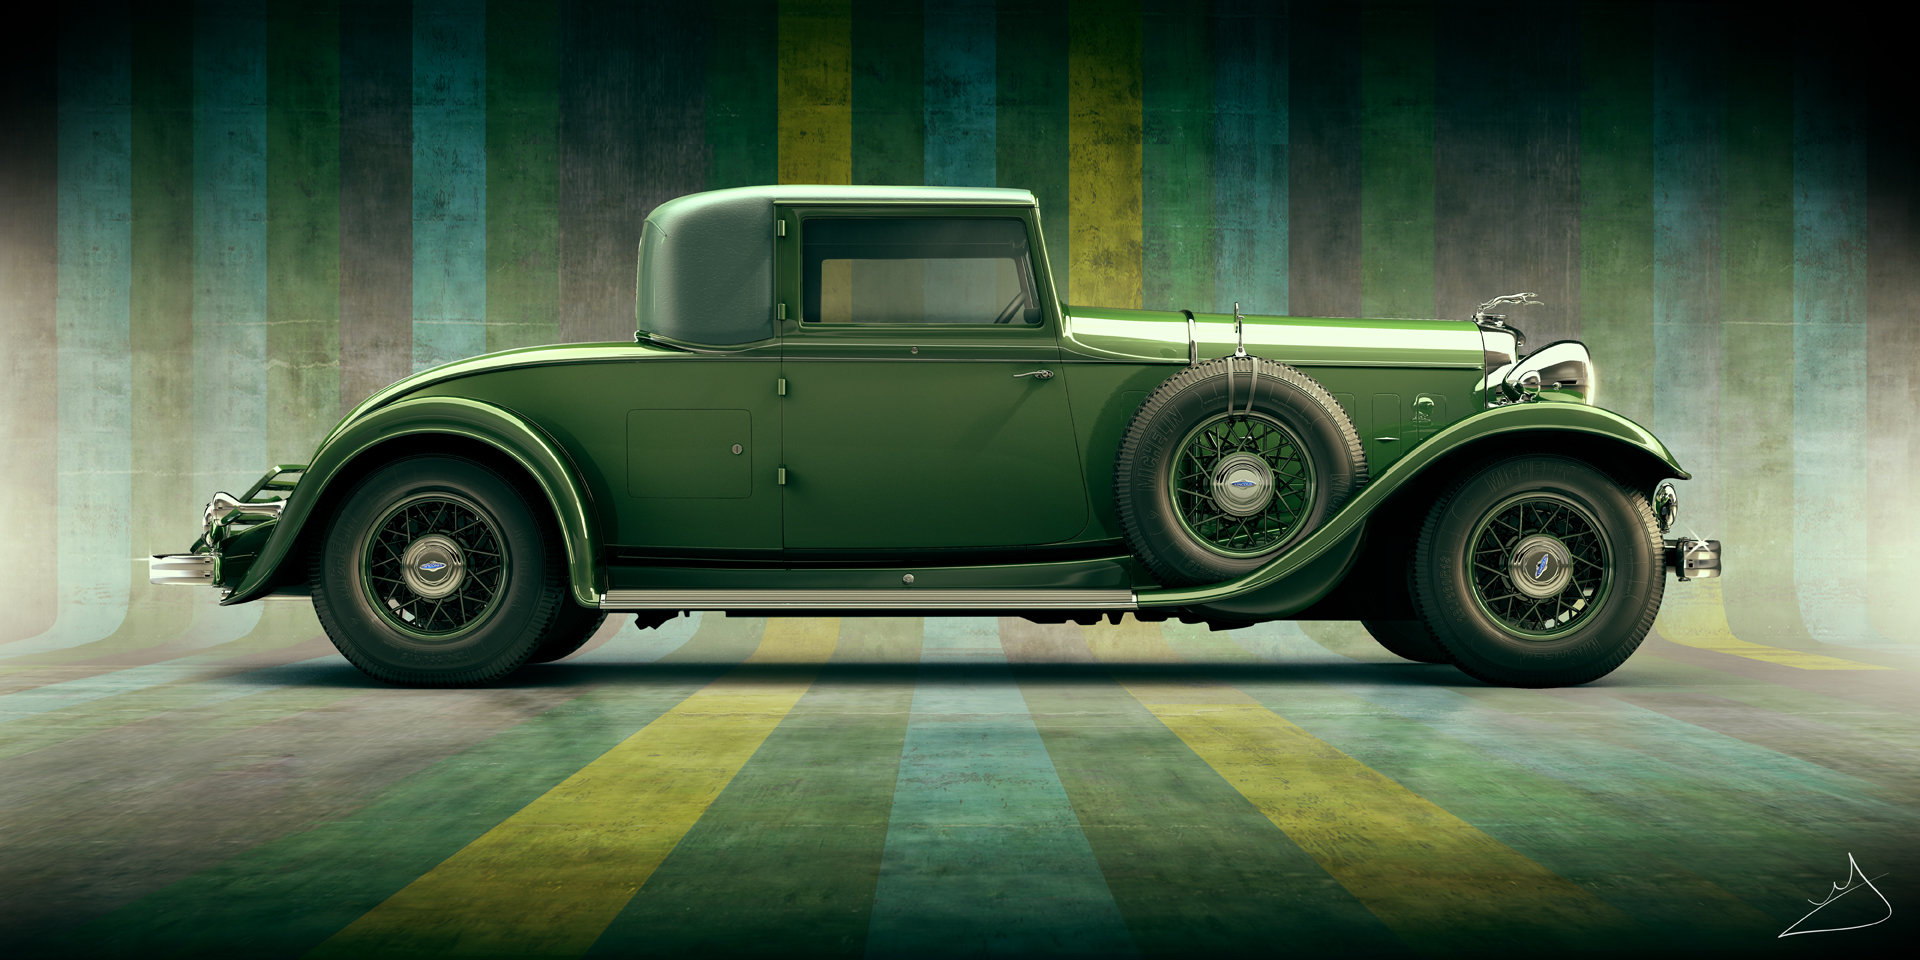 Alexandr novitskiy 1932 lincoln kb coupe art